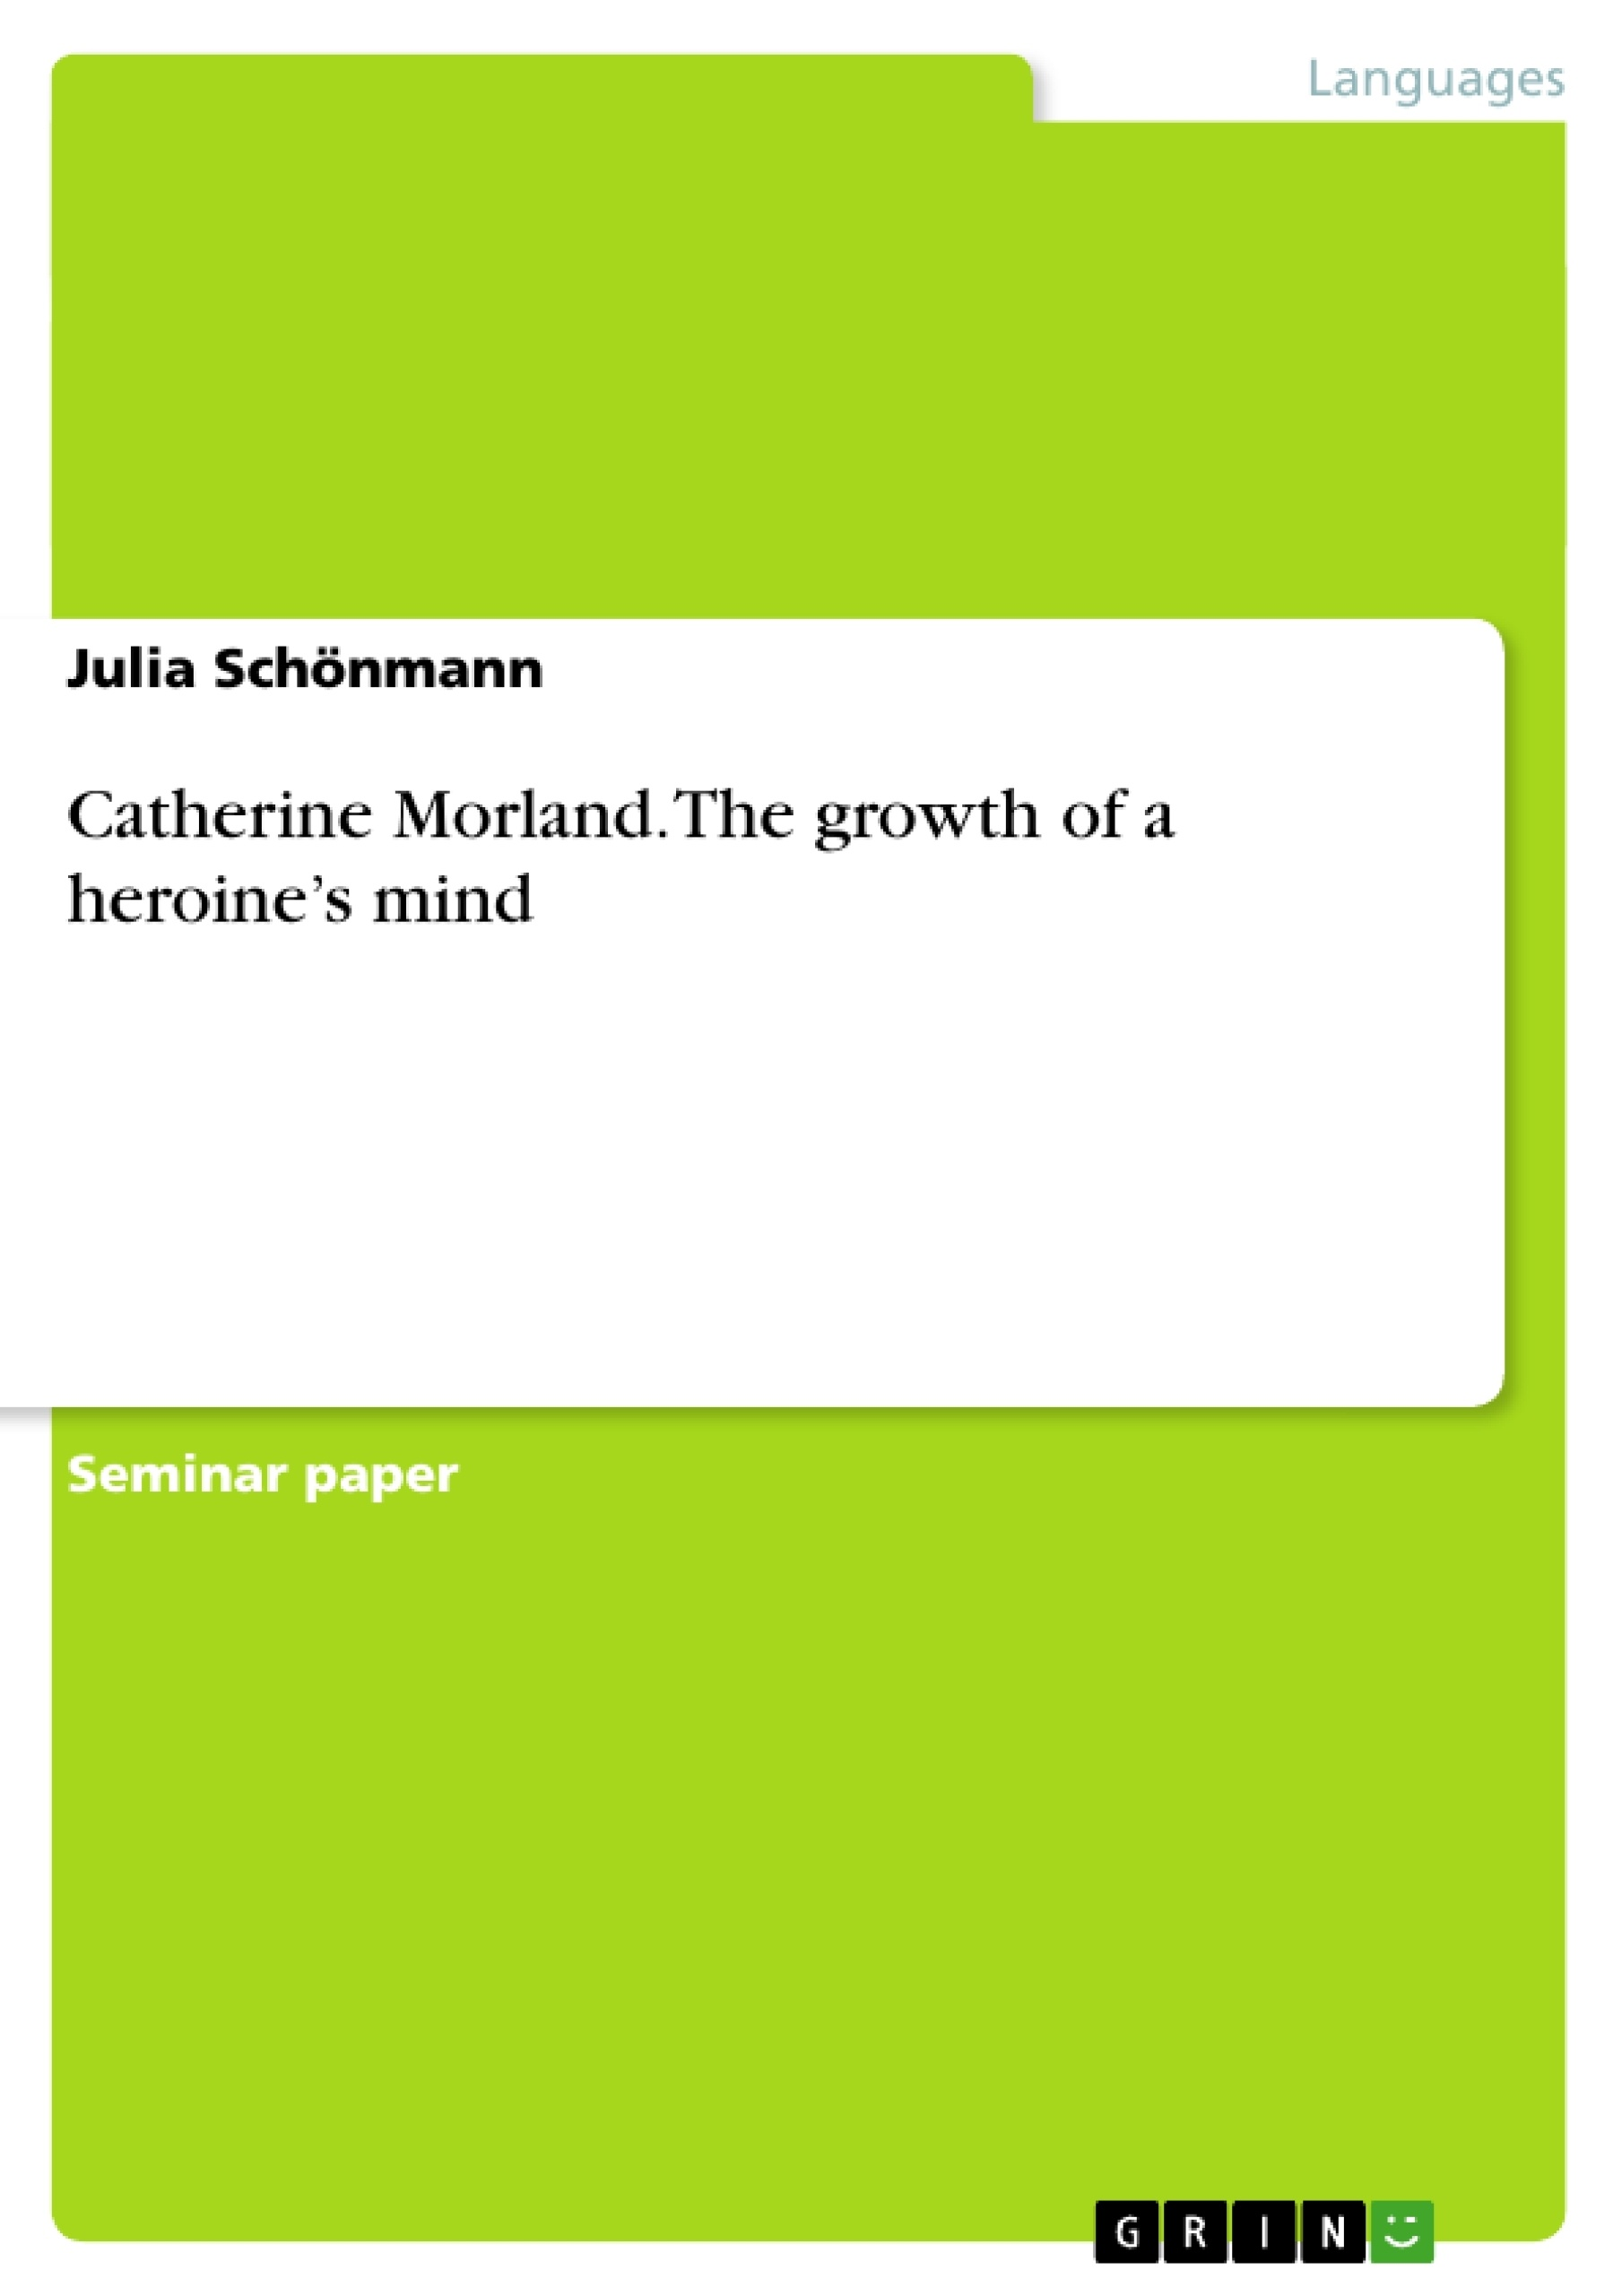 Title: Catherine Morland. The growth of a heroine's mind